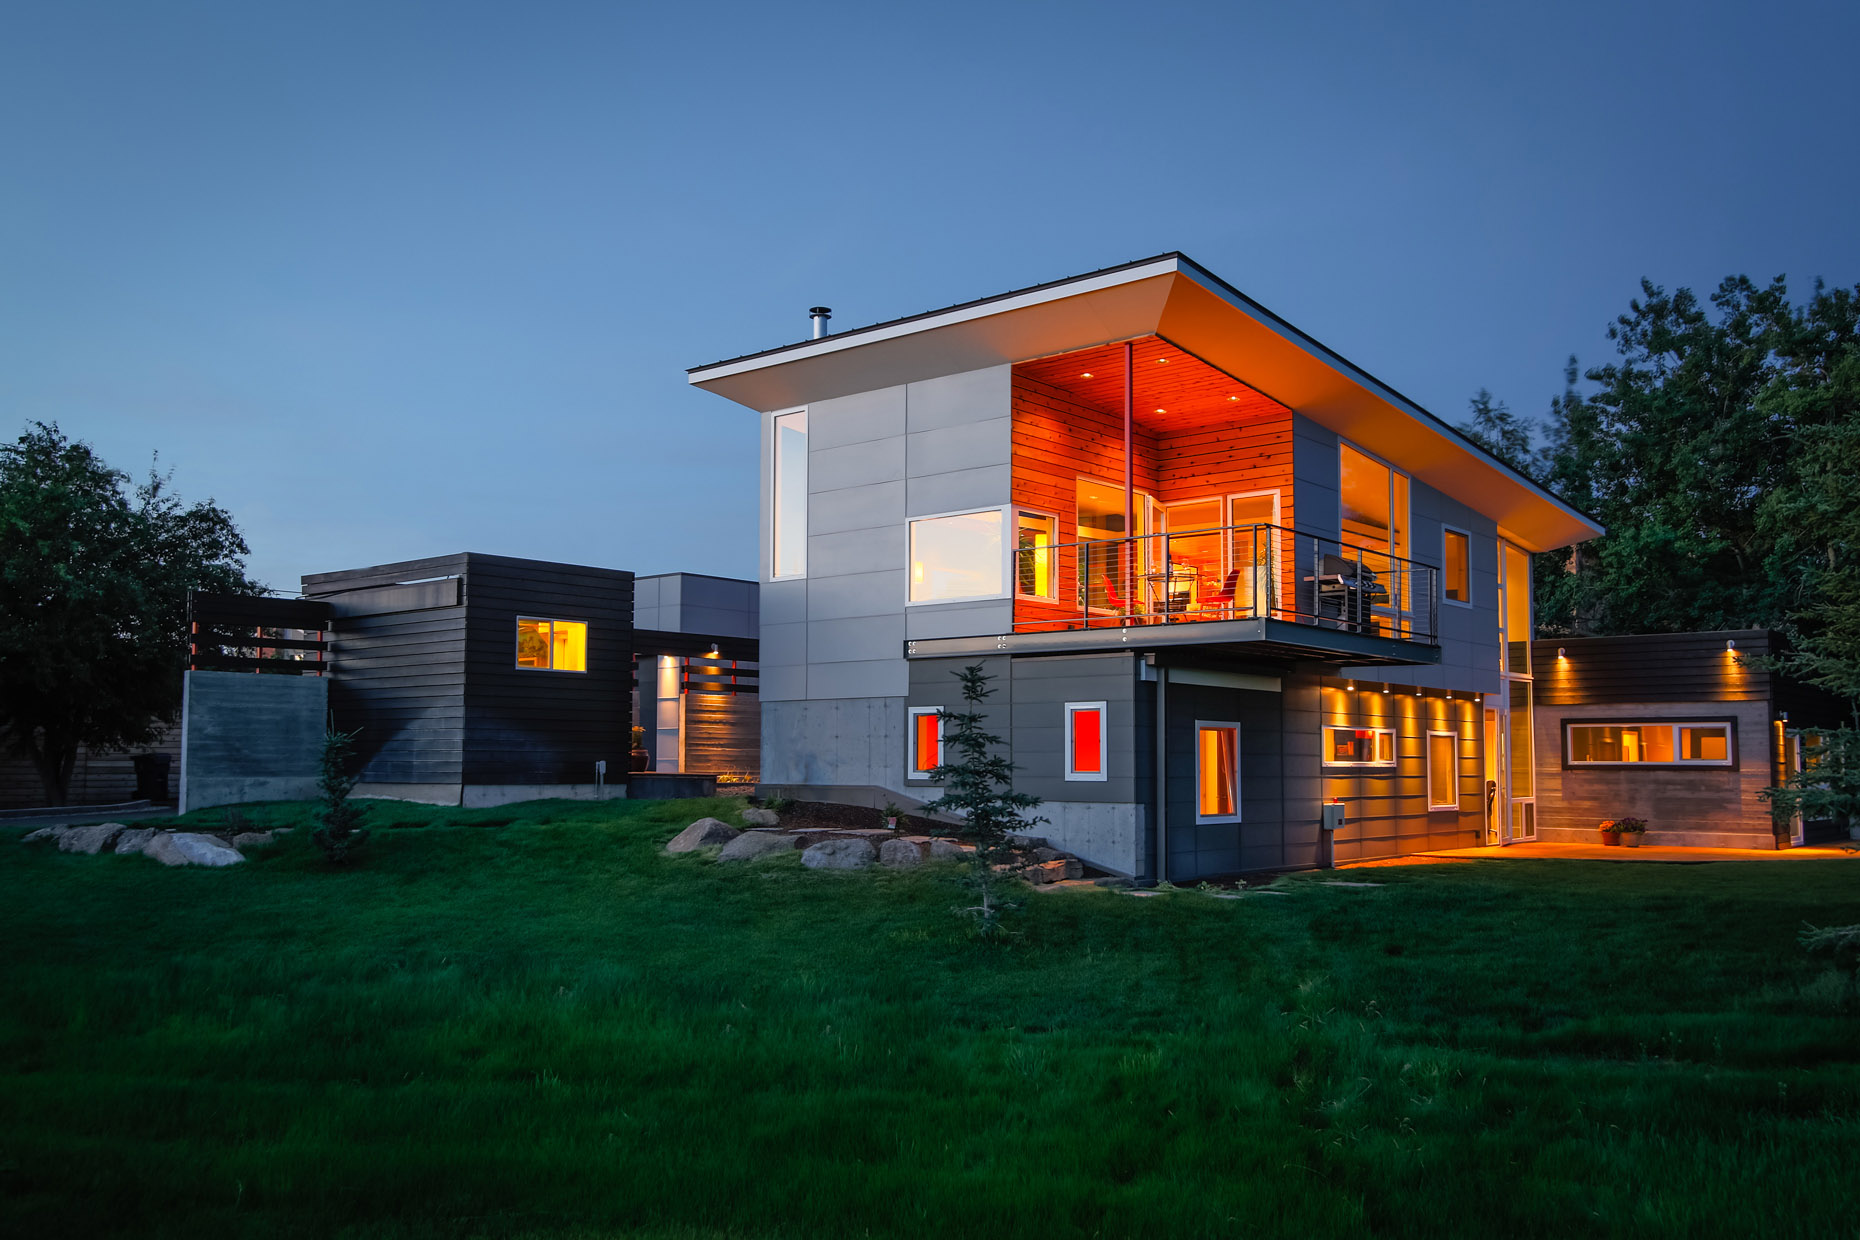 architecture Think Tank contemporary design exterior Bozeman dusk